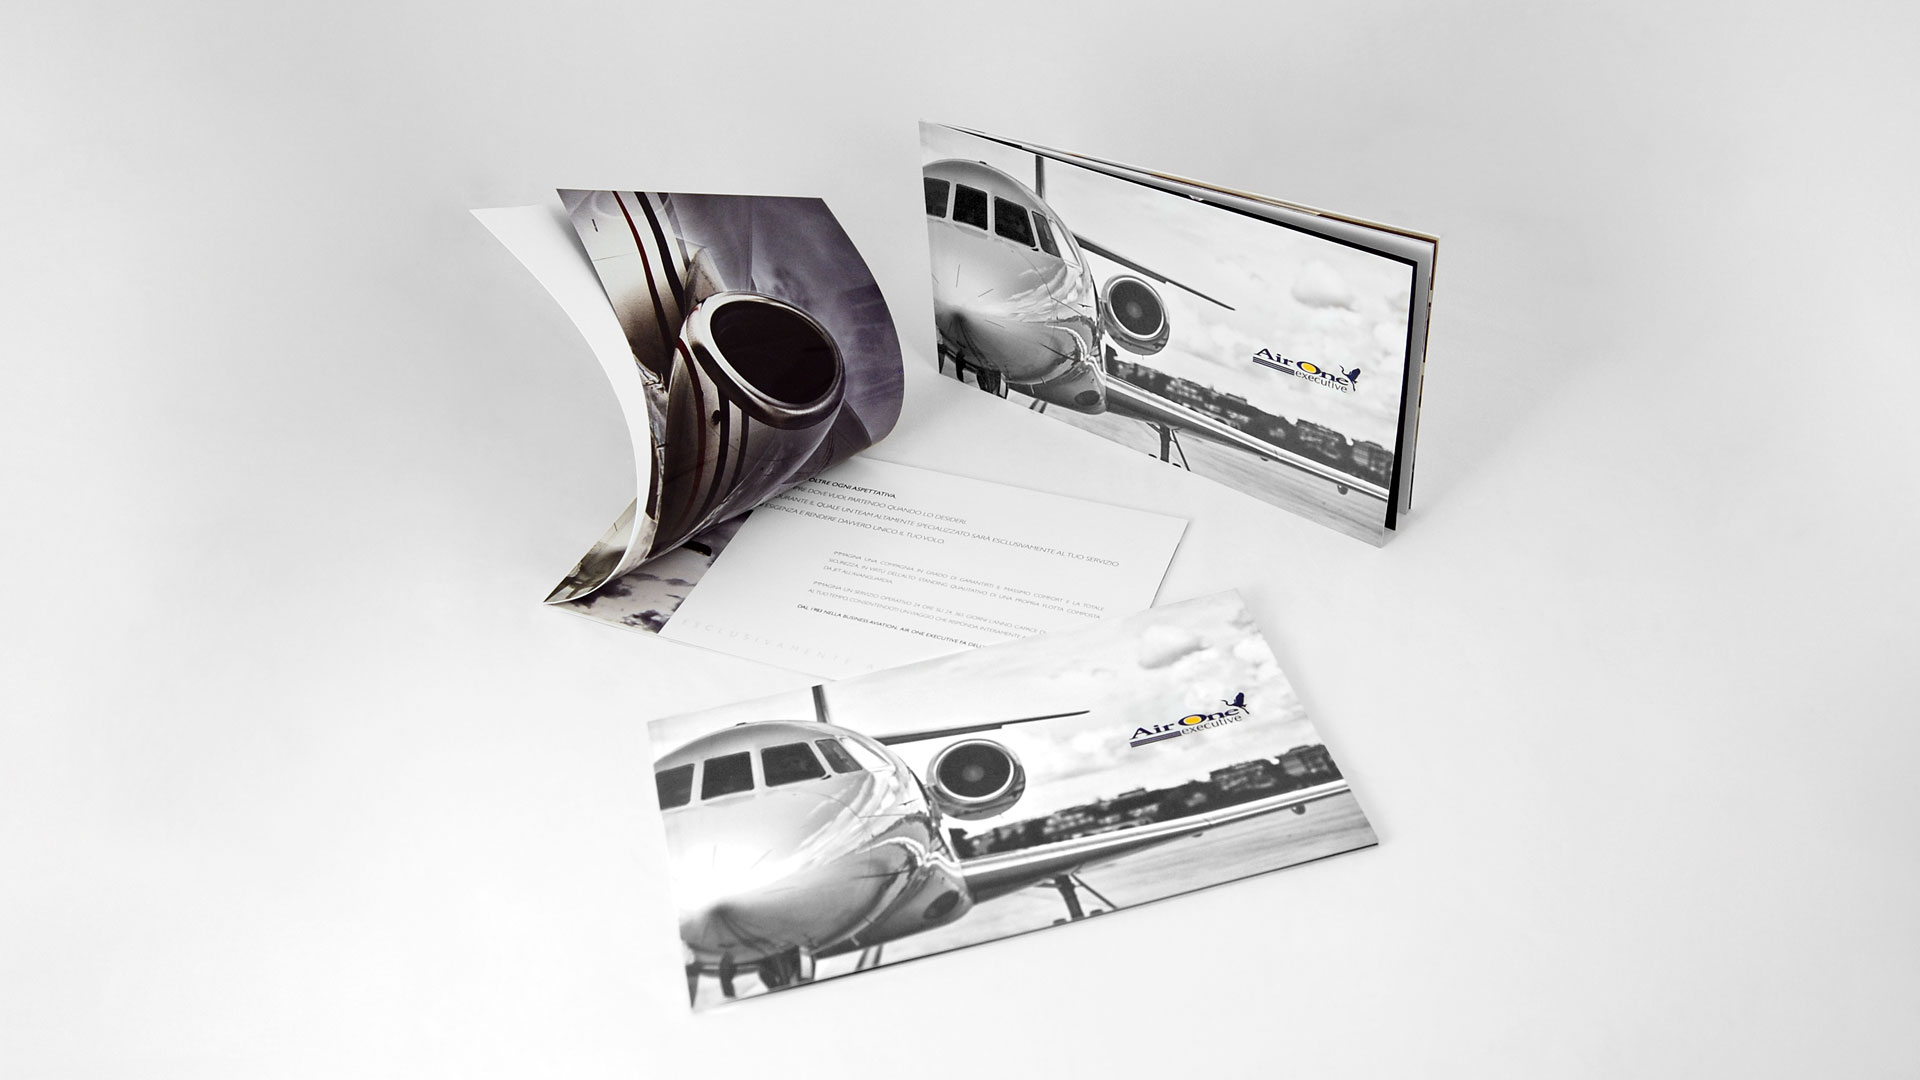 Airone Executive, Brochure